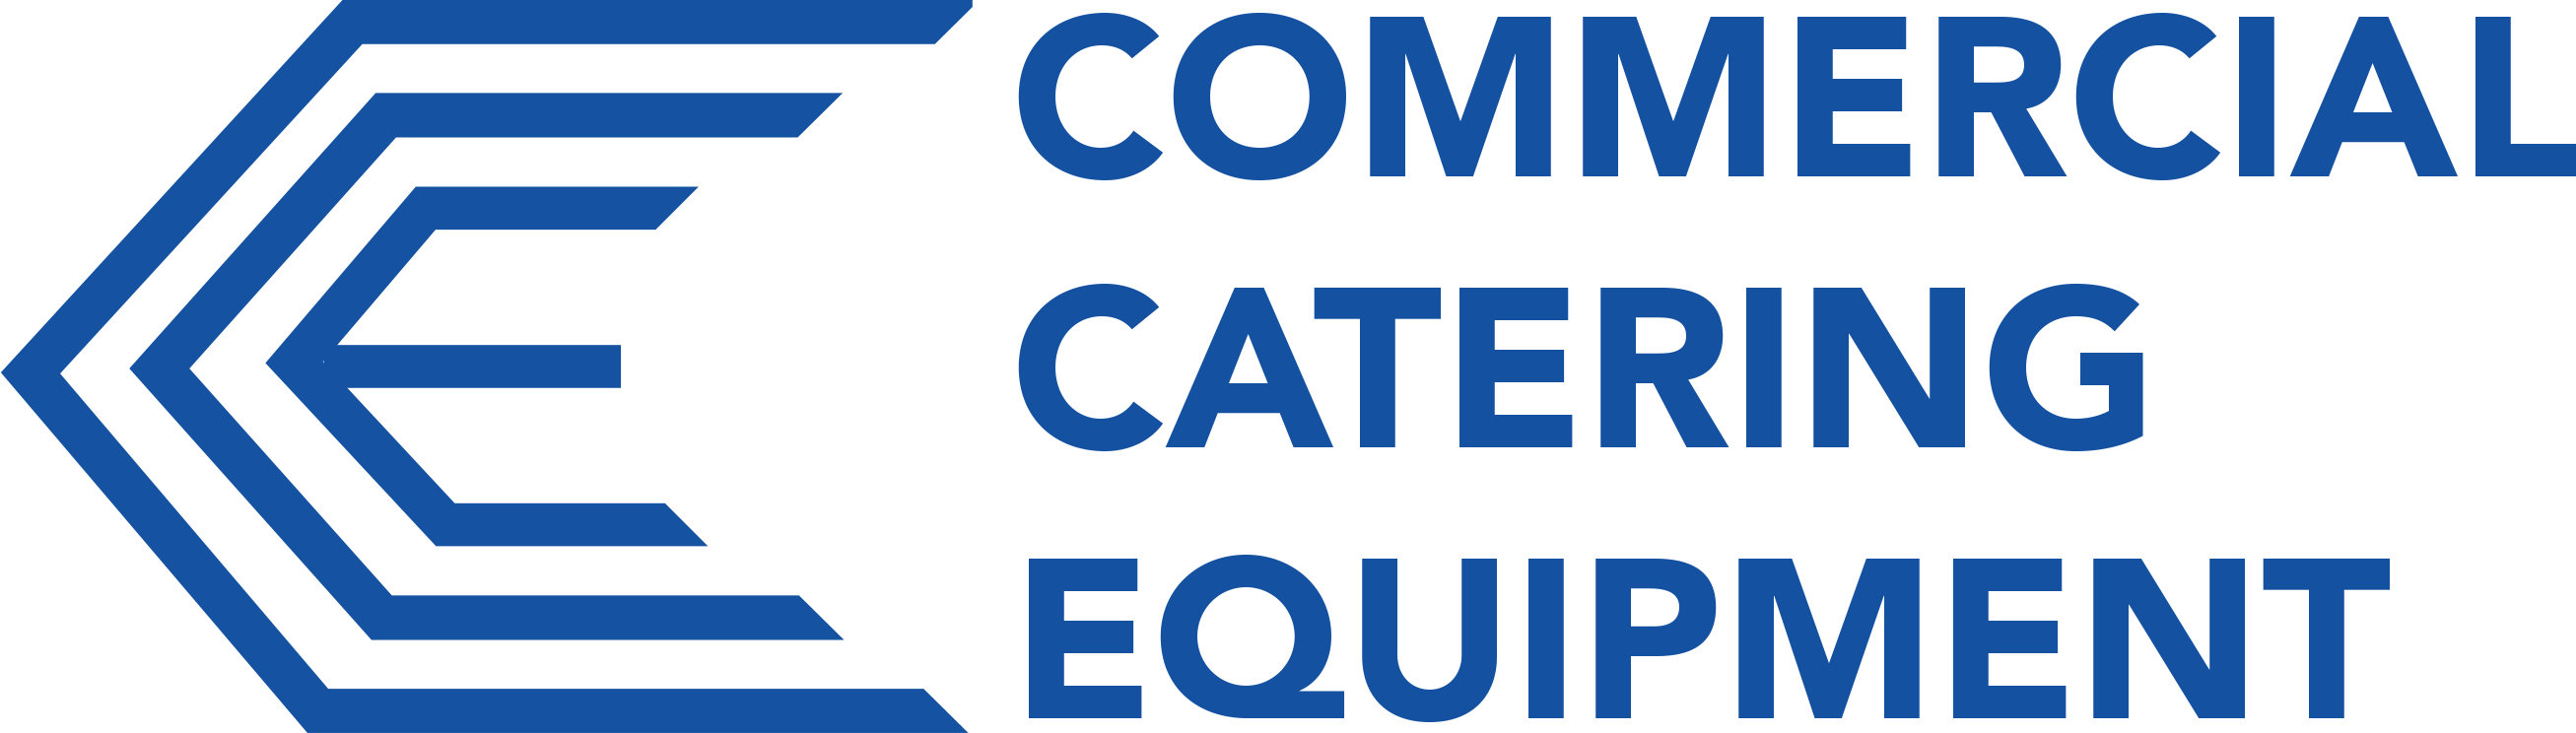 CCE® - Commercial Catering Equipment LLC. Dubai, United Arab Emirates | Logo